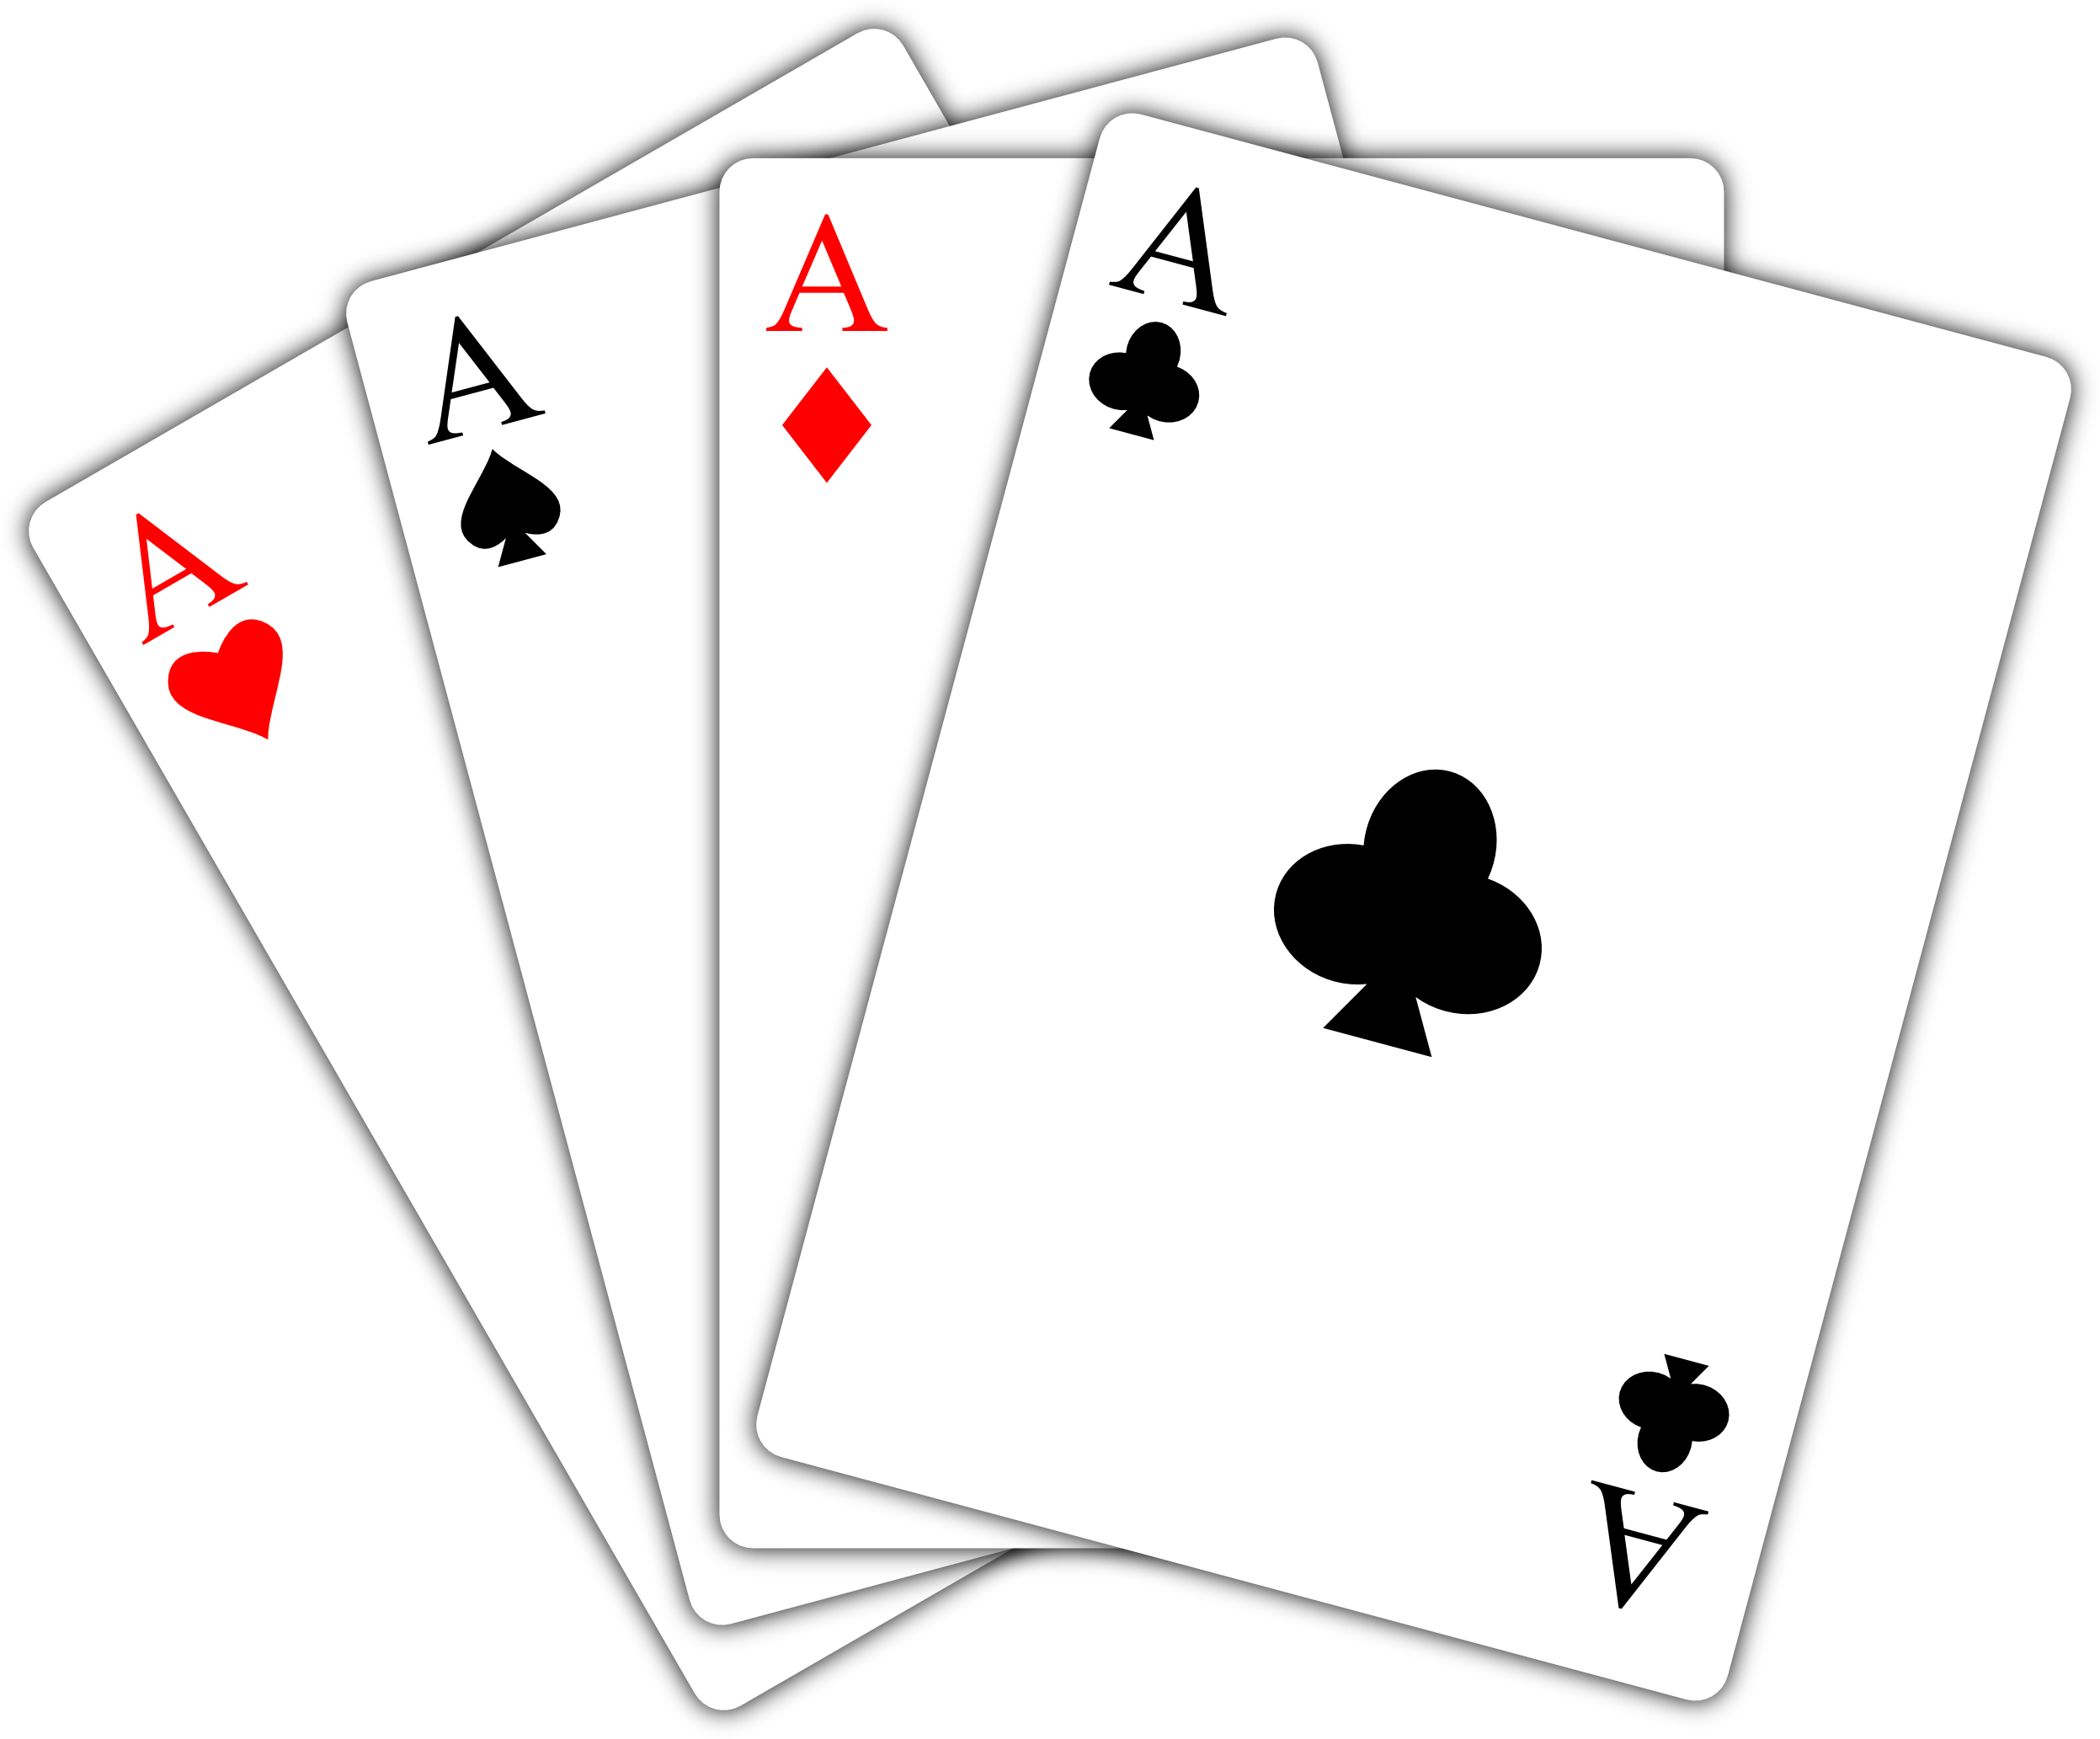 Cards PNG Images Transparent Free Download | PNGMart.com